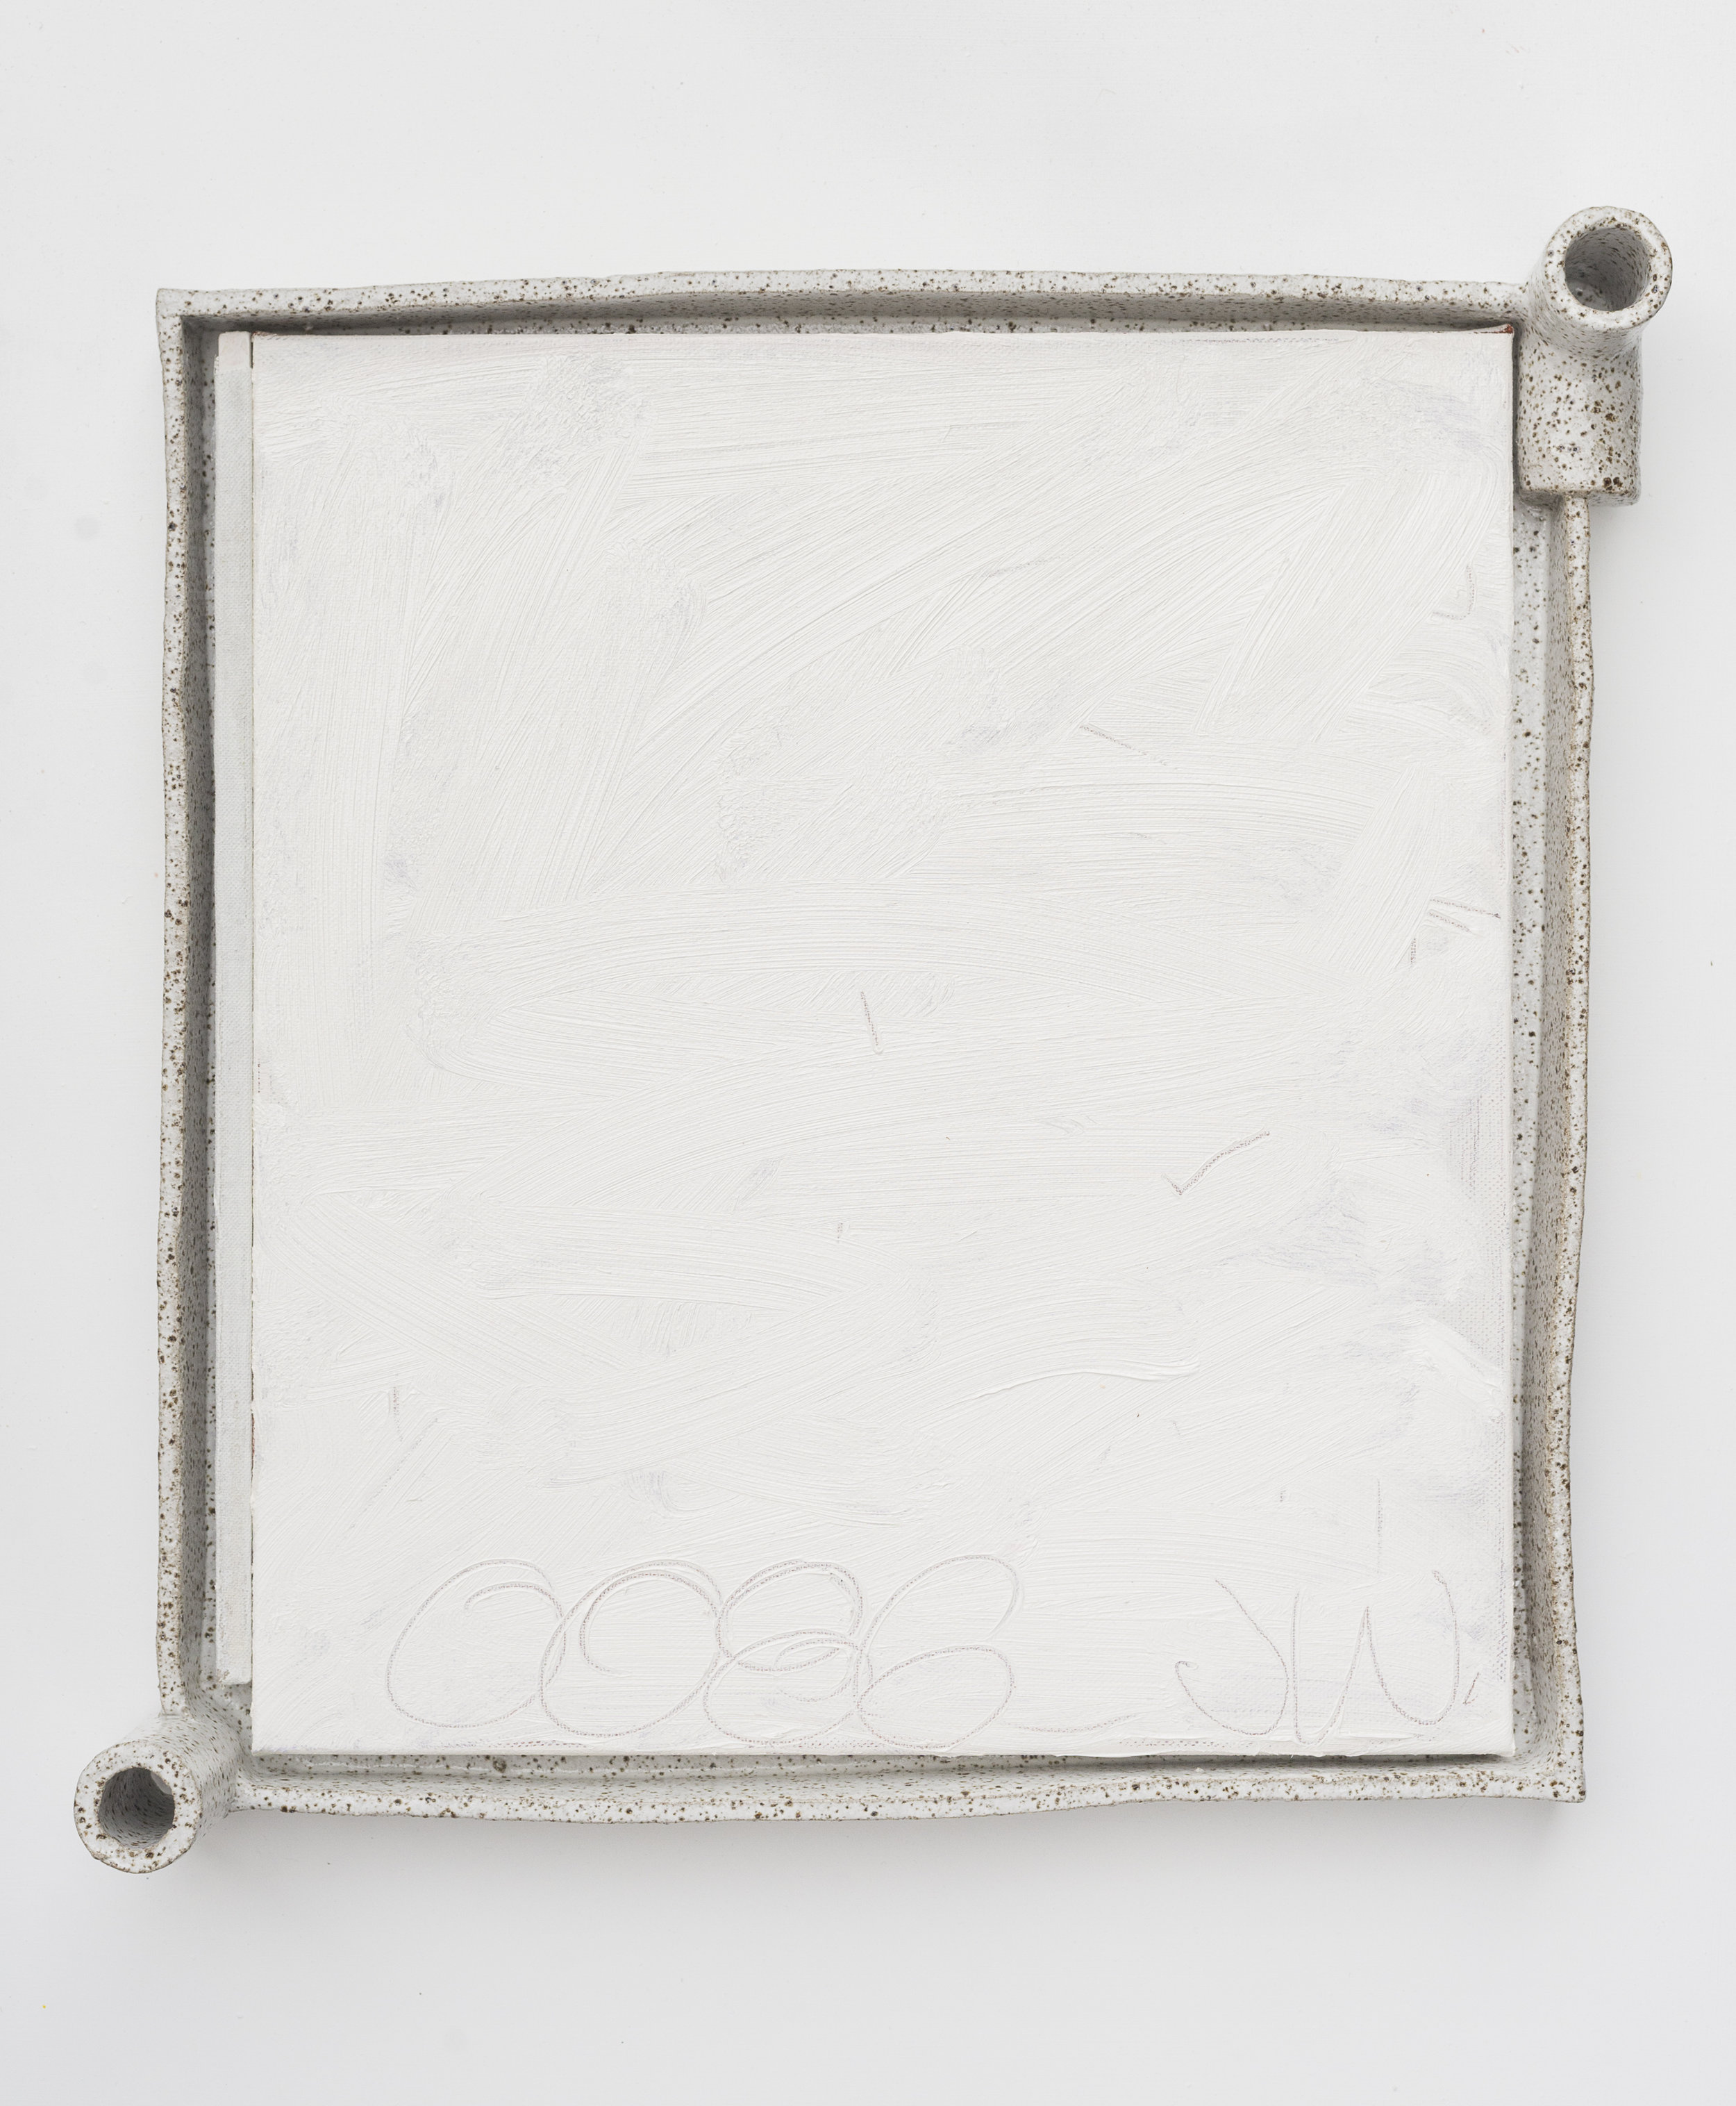 #0086  (2018) oil on linen, glazed stoneware frame 51 x 48 x 10 cm